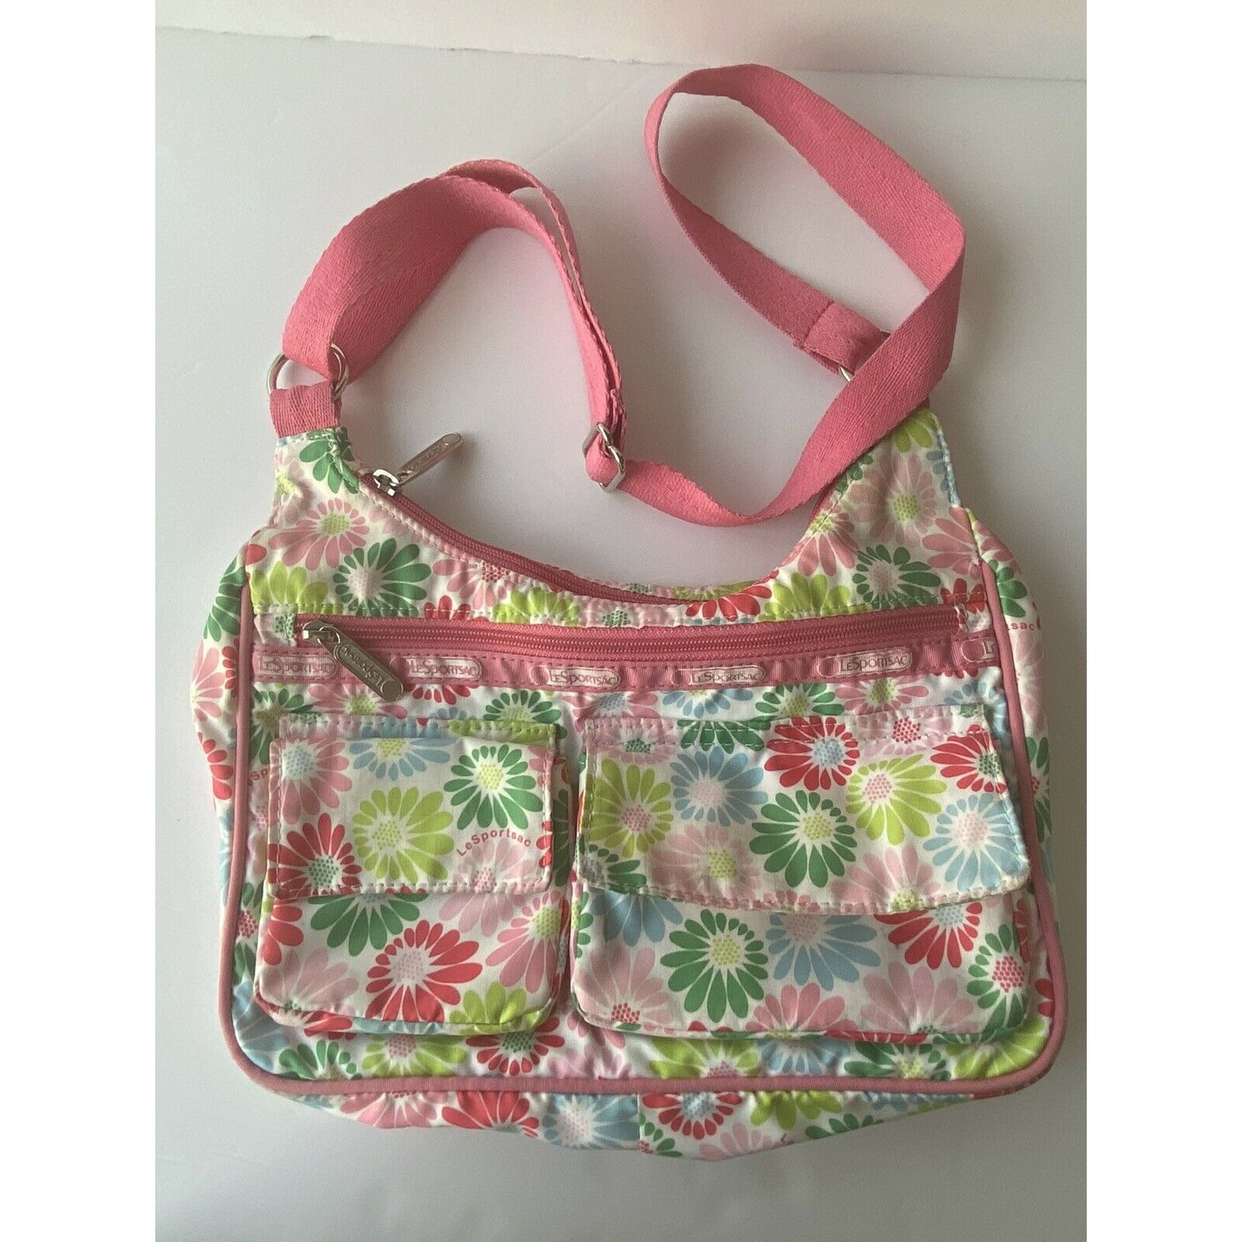 Green and blue flower bag